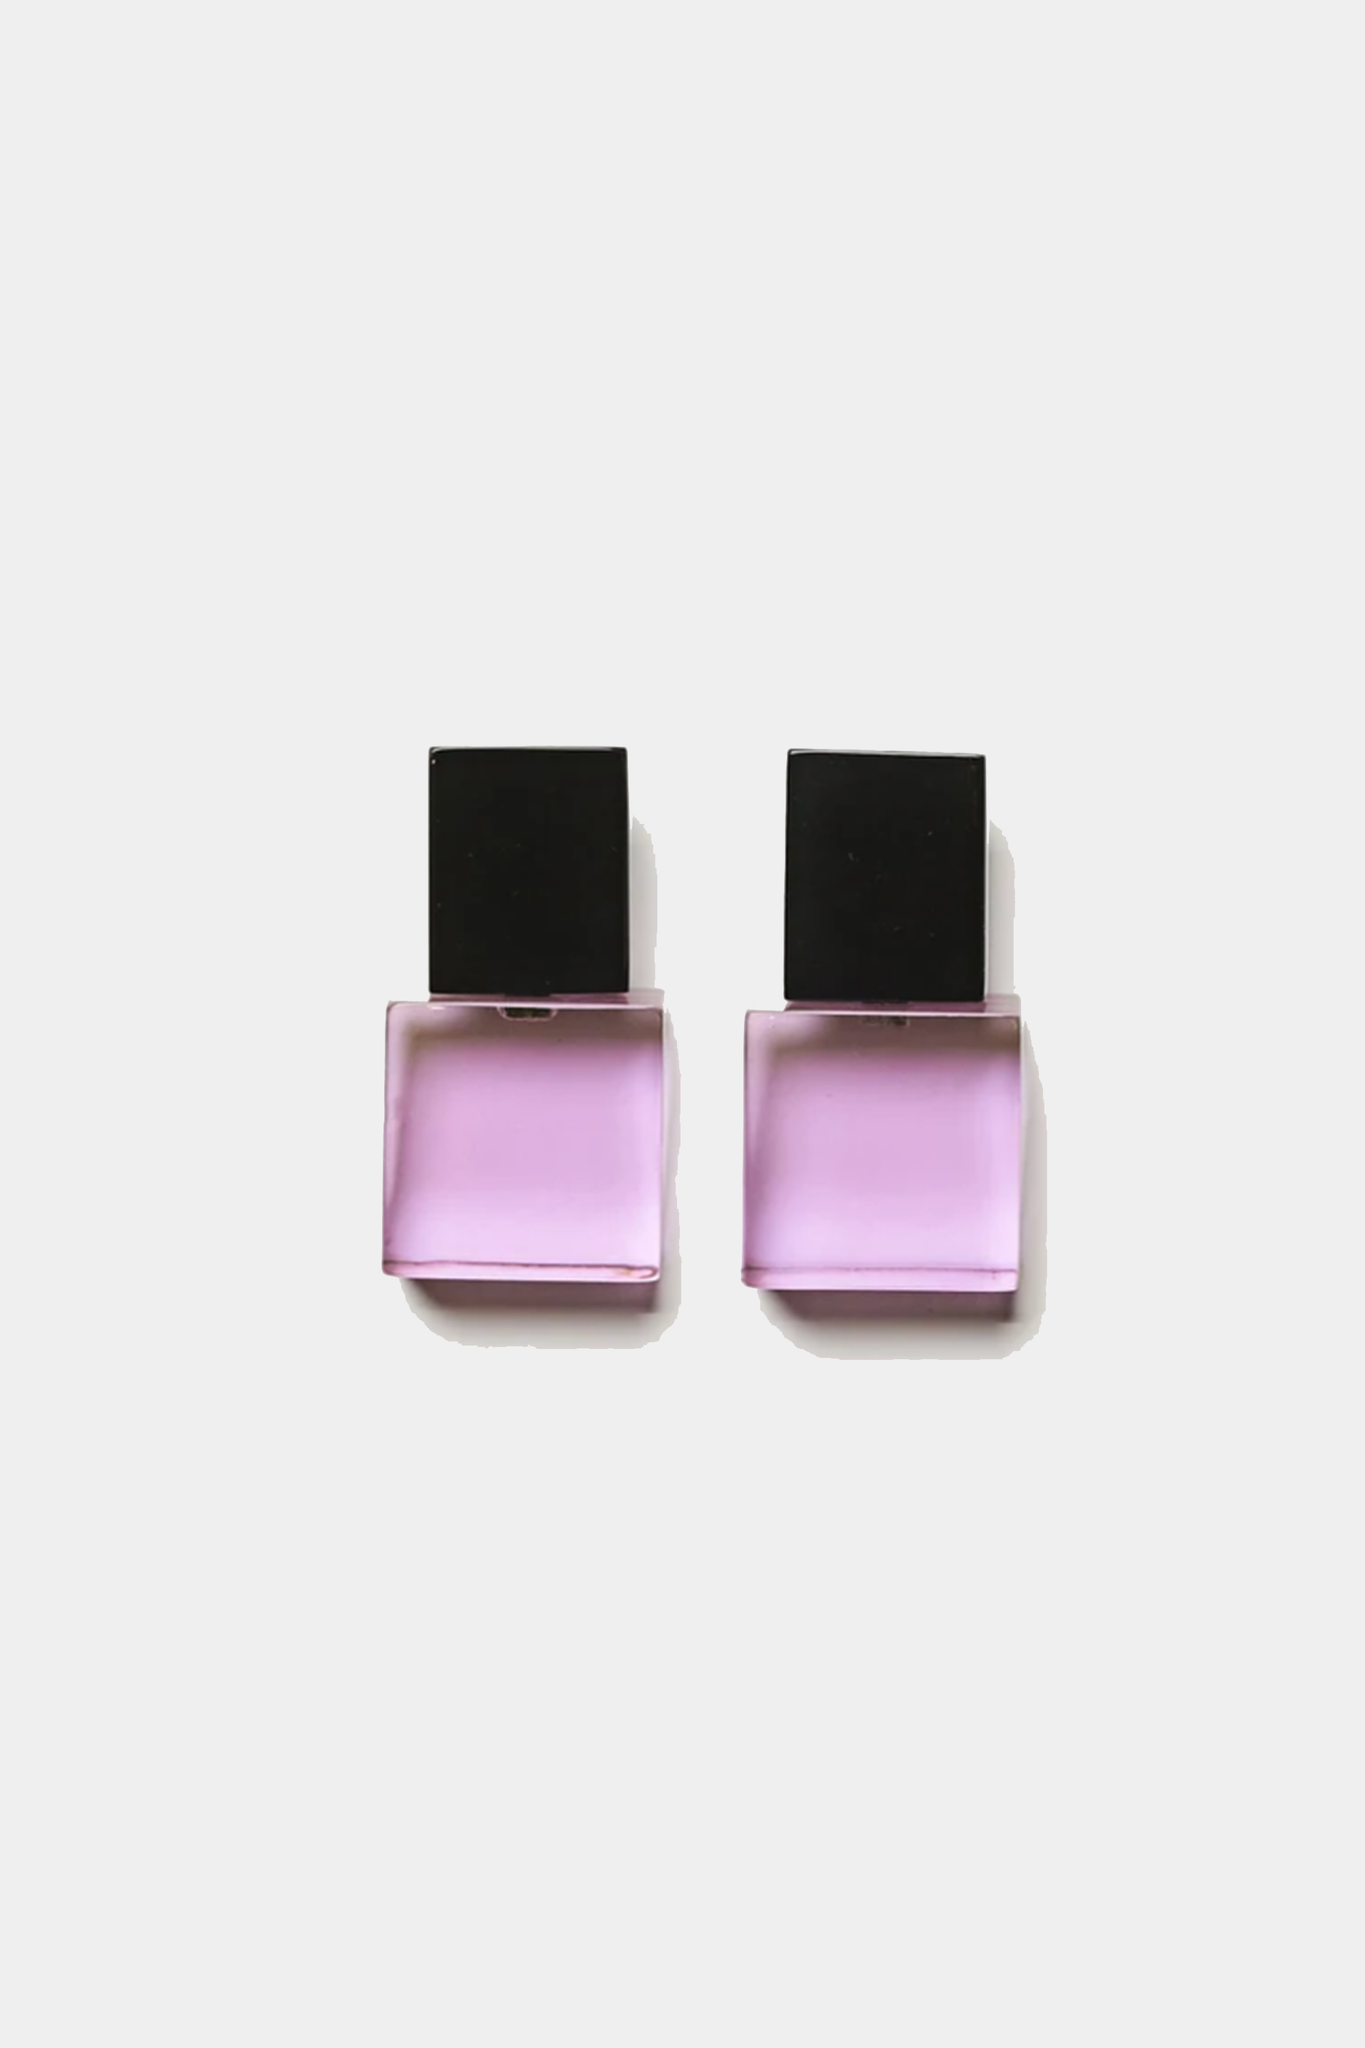 MONIES - RACHEL EARCLIPS, purple and black